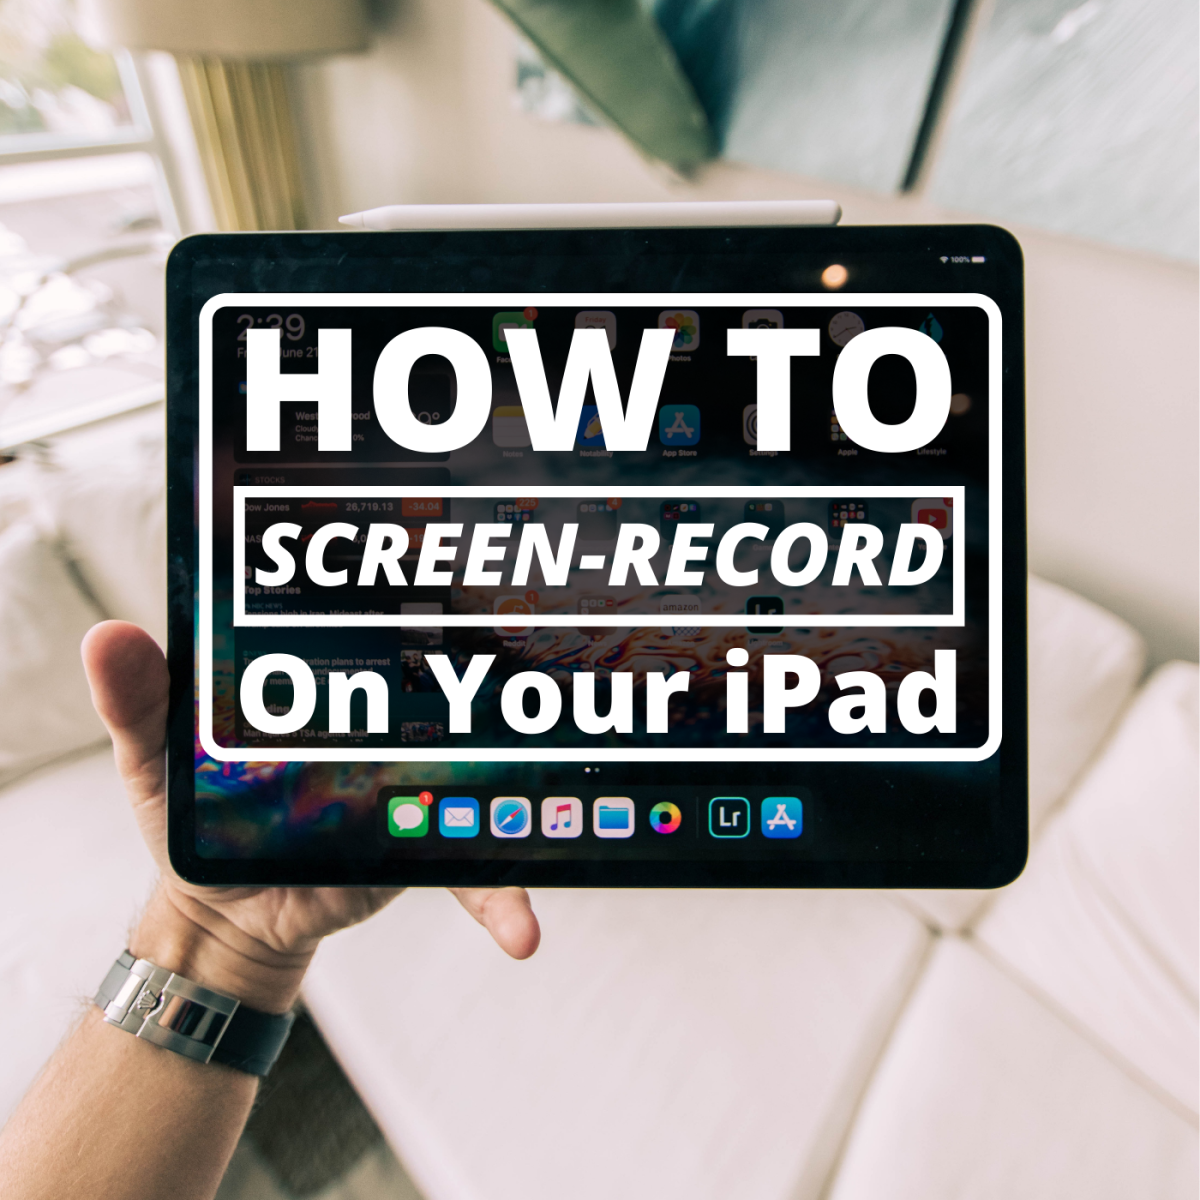 Learn how to take recordings of your iPad screen so you can create demos and tutorials for friends, coworkers, trainees, or your YouTube channel.